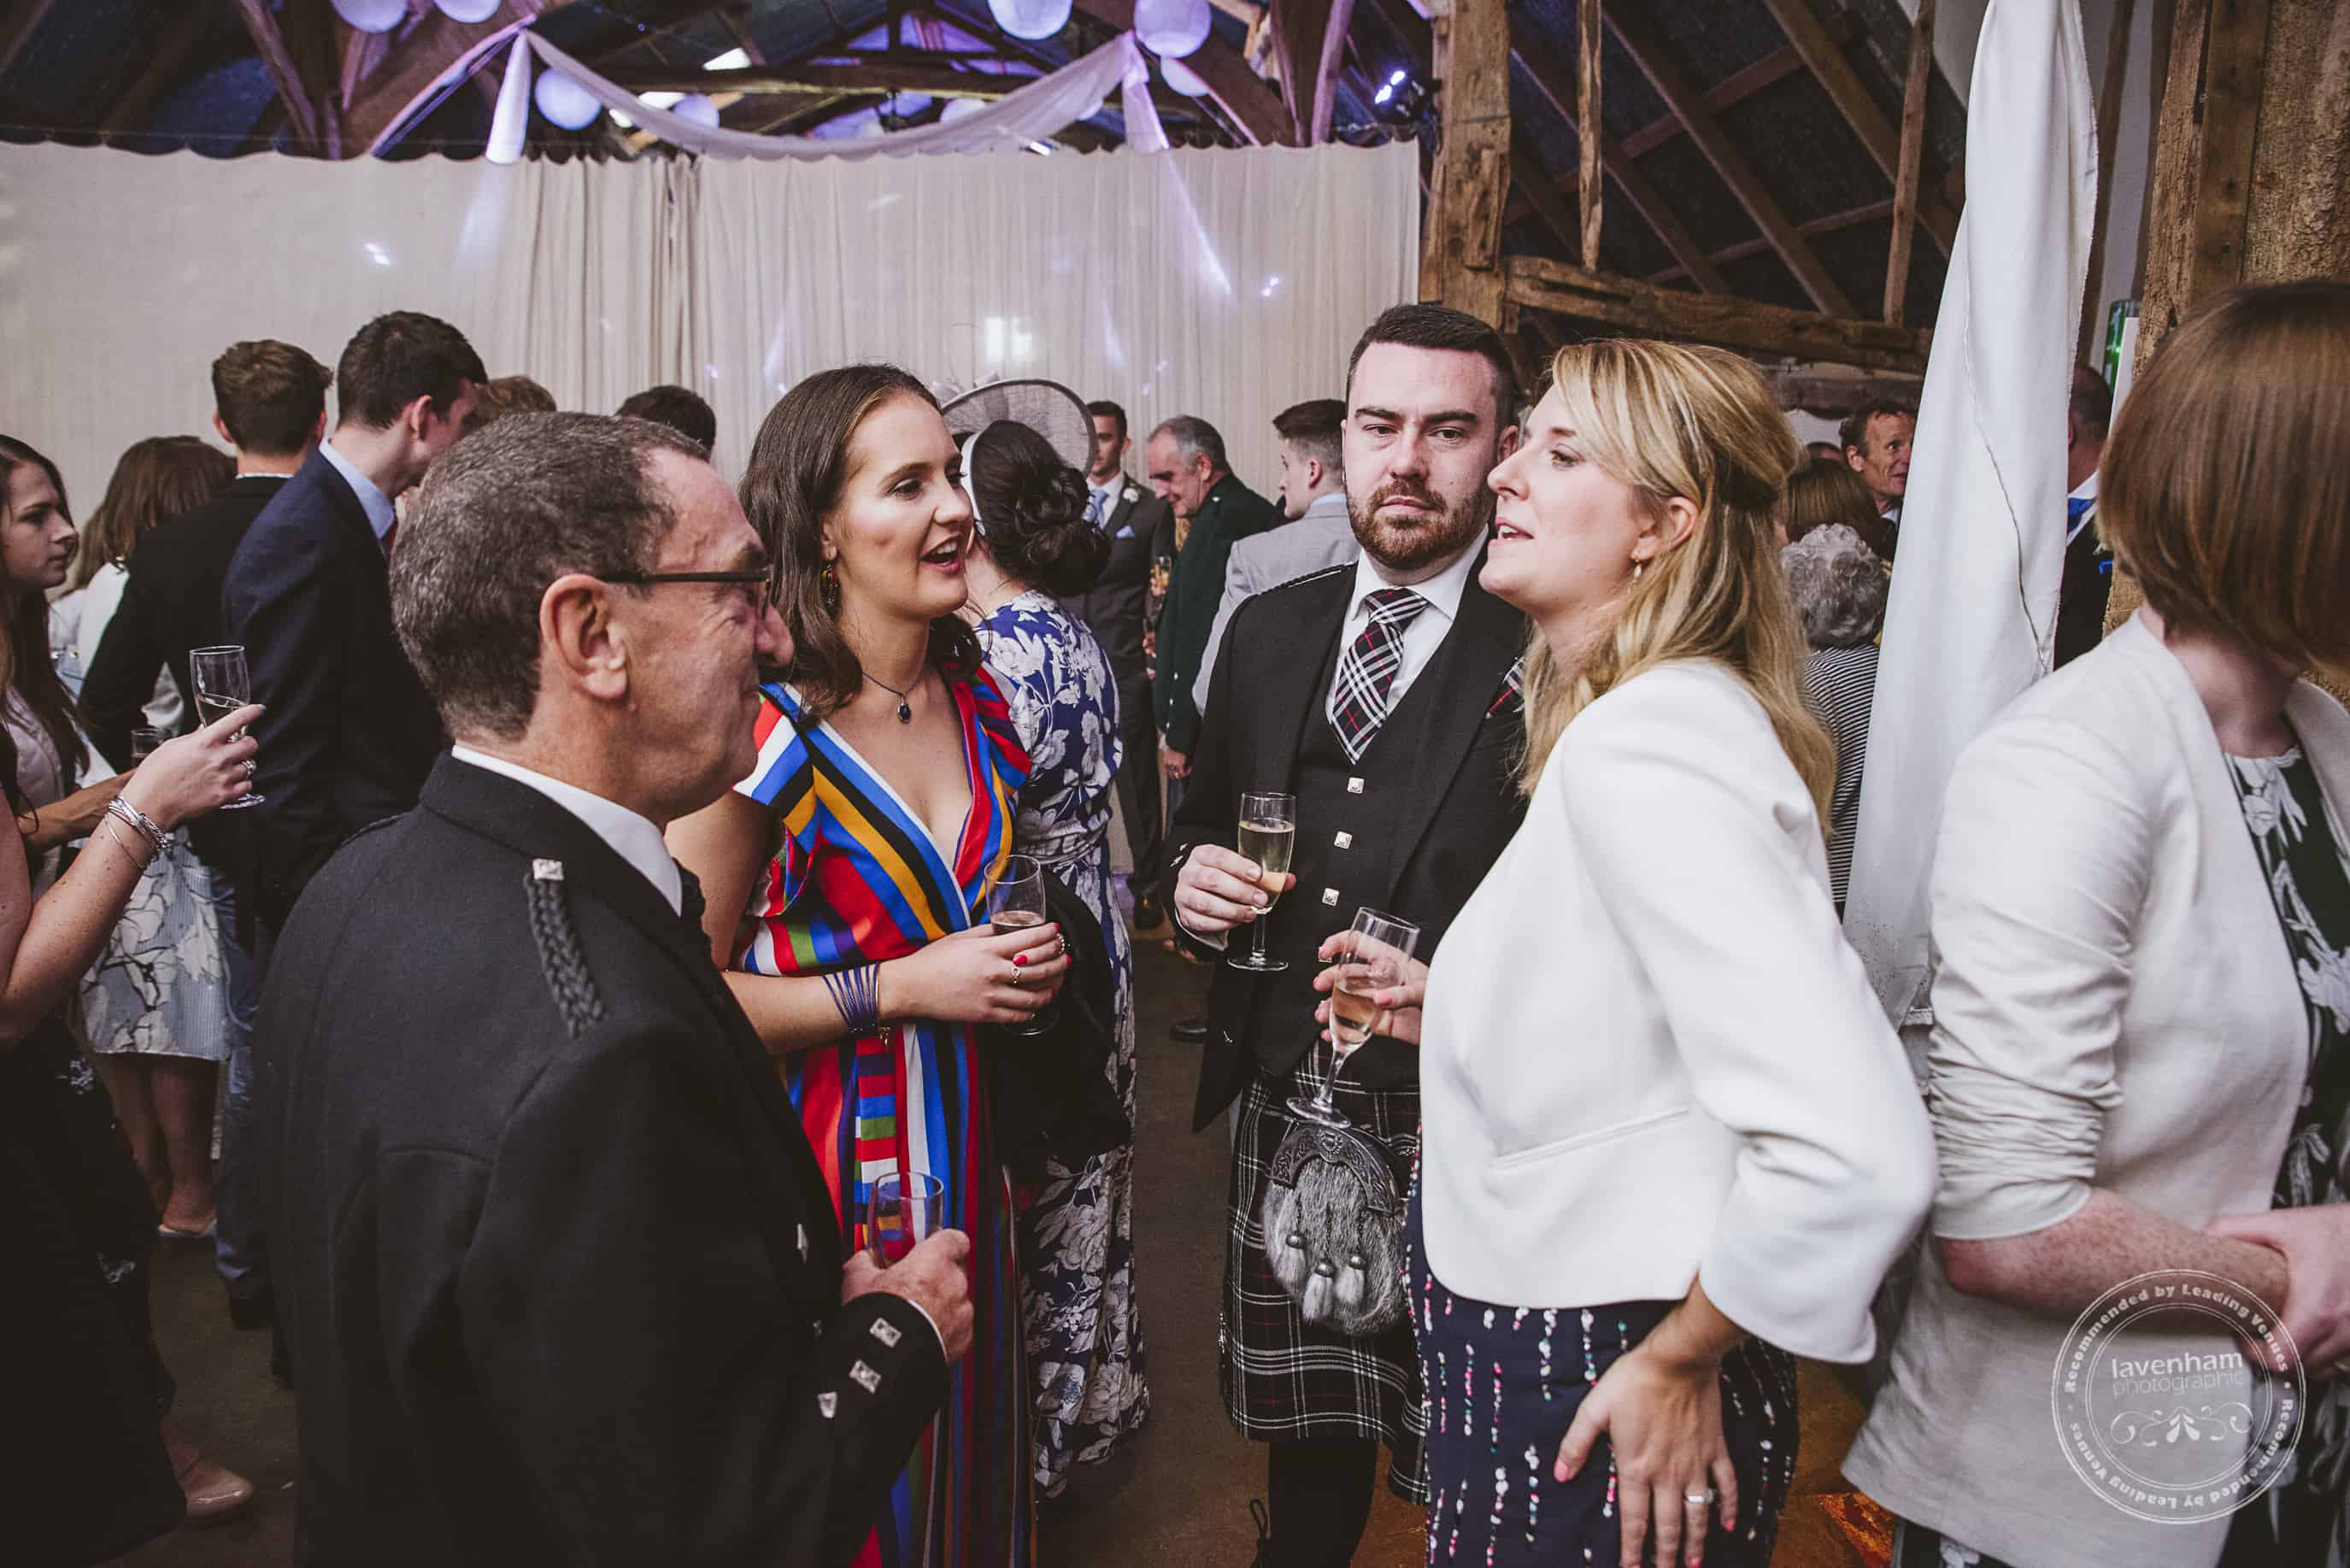 220918 Alpheton Barn Wedding Photography by Lavenham Photographic 117